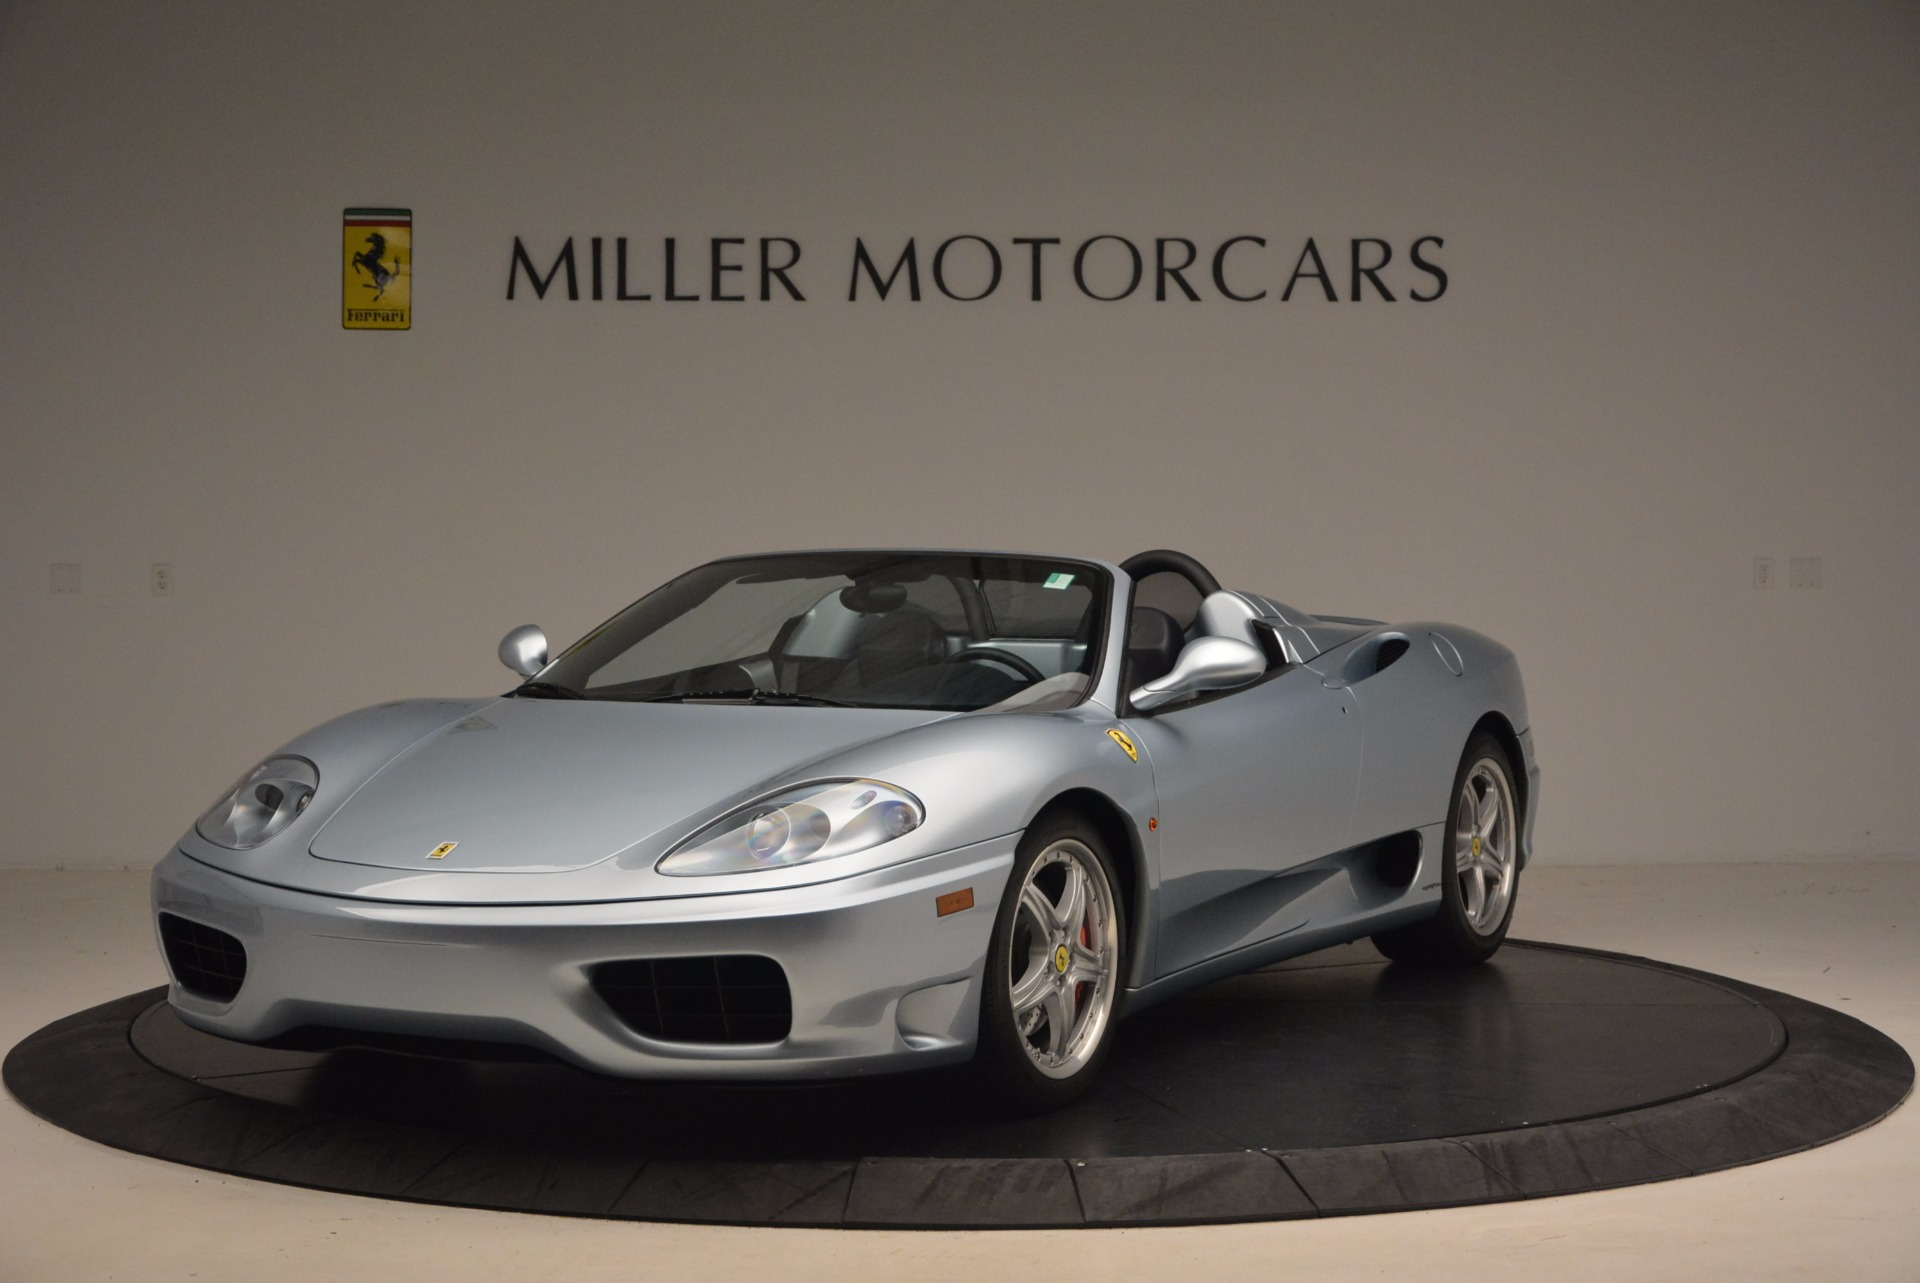 Used 2003 Ferrari 360 Spider 6-Speed Manual for sale Sold at Alfa Romeo of Greenwich in Greenwich CT 06830 1